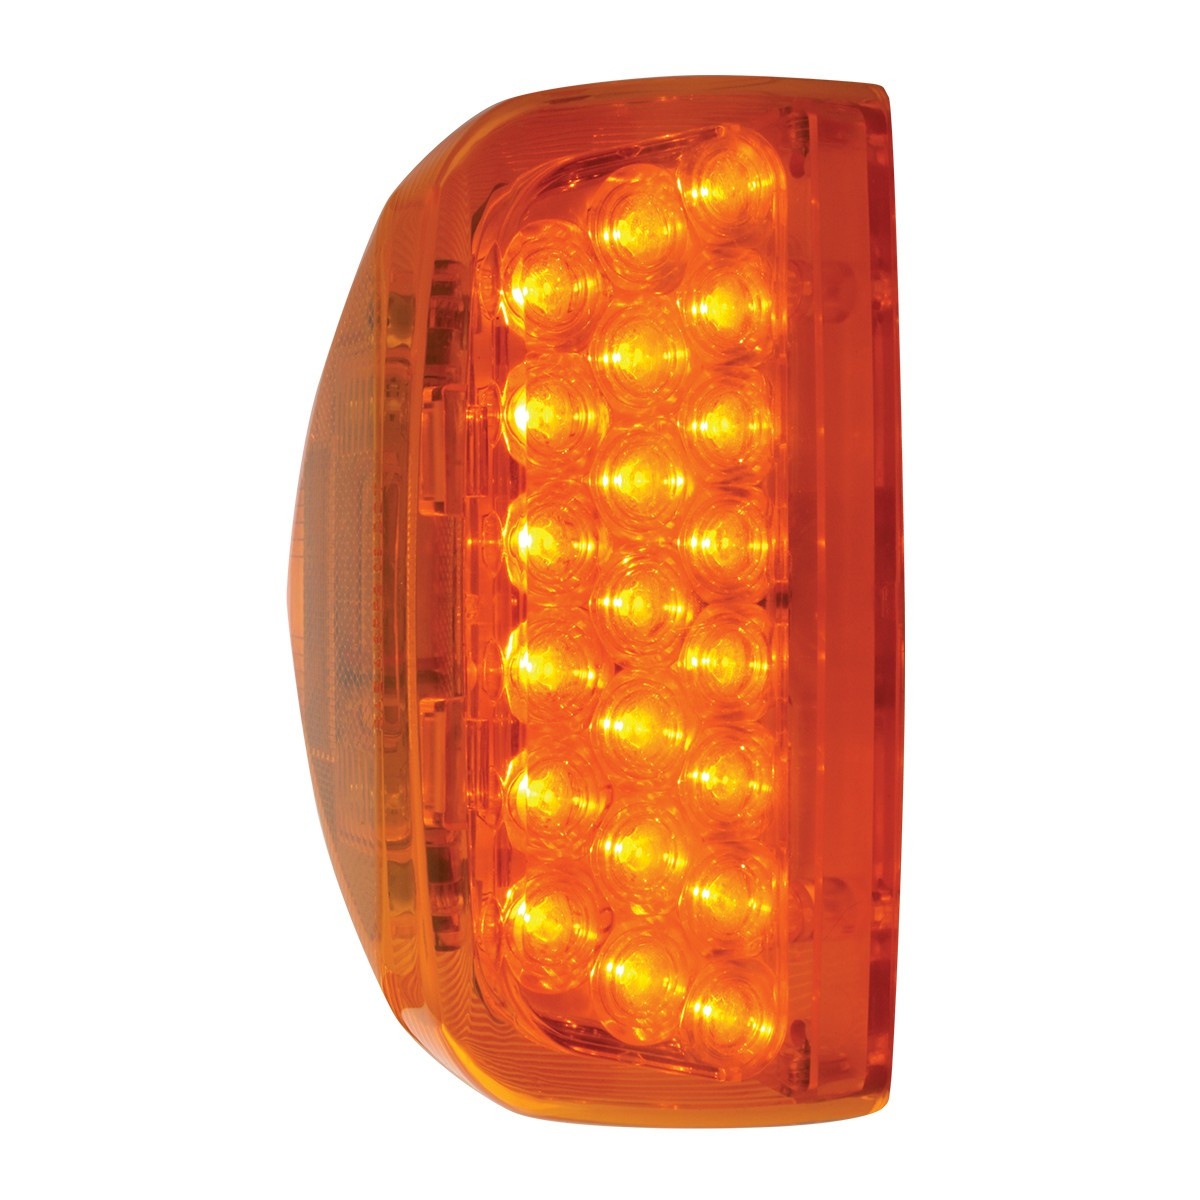 77230 Headlight Turn Signal LED Light for Pete